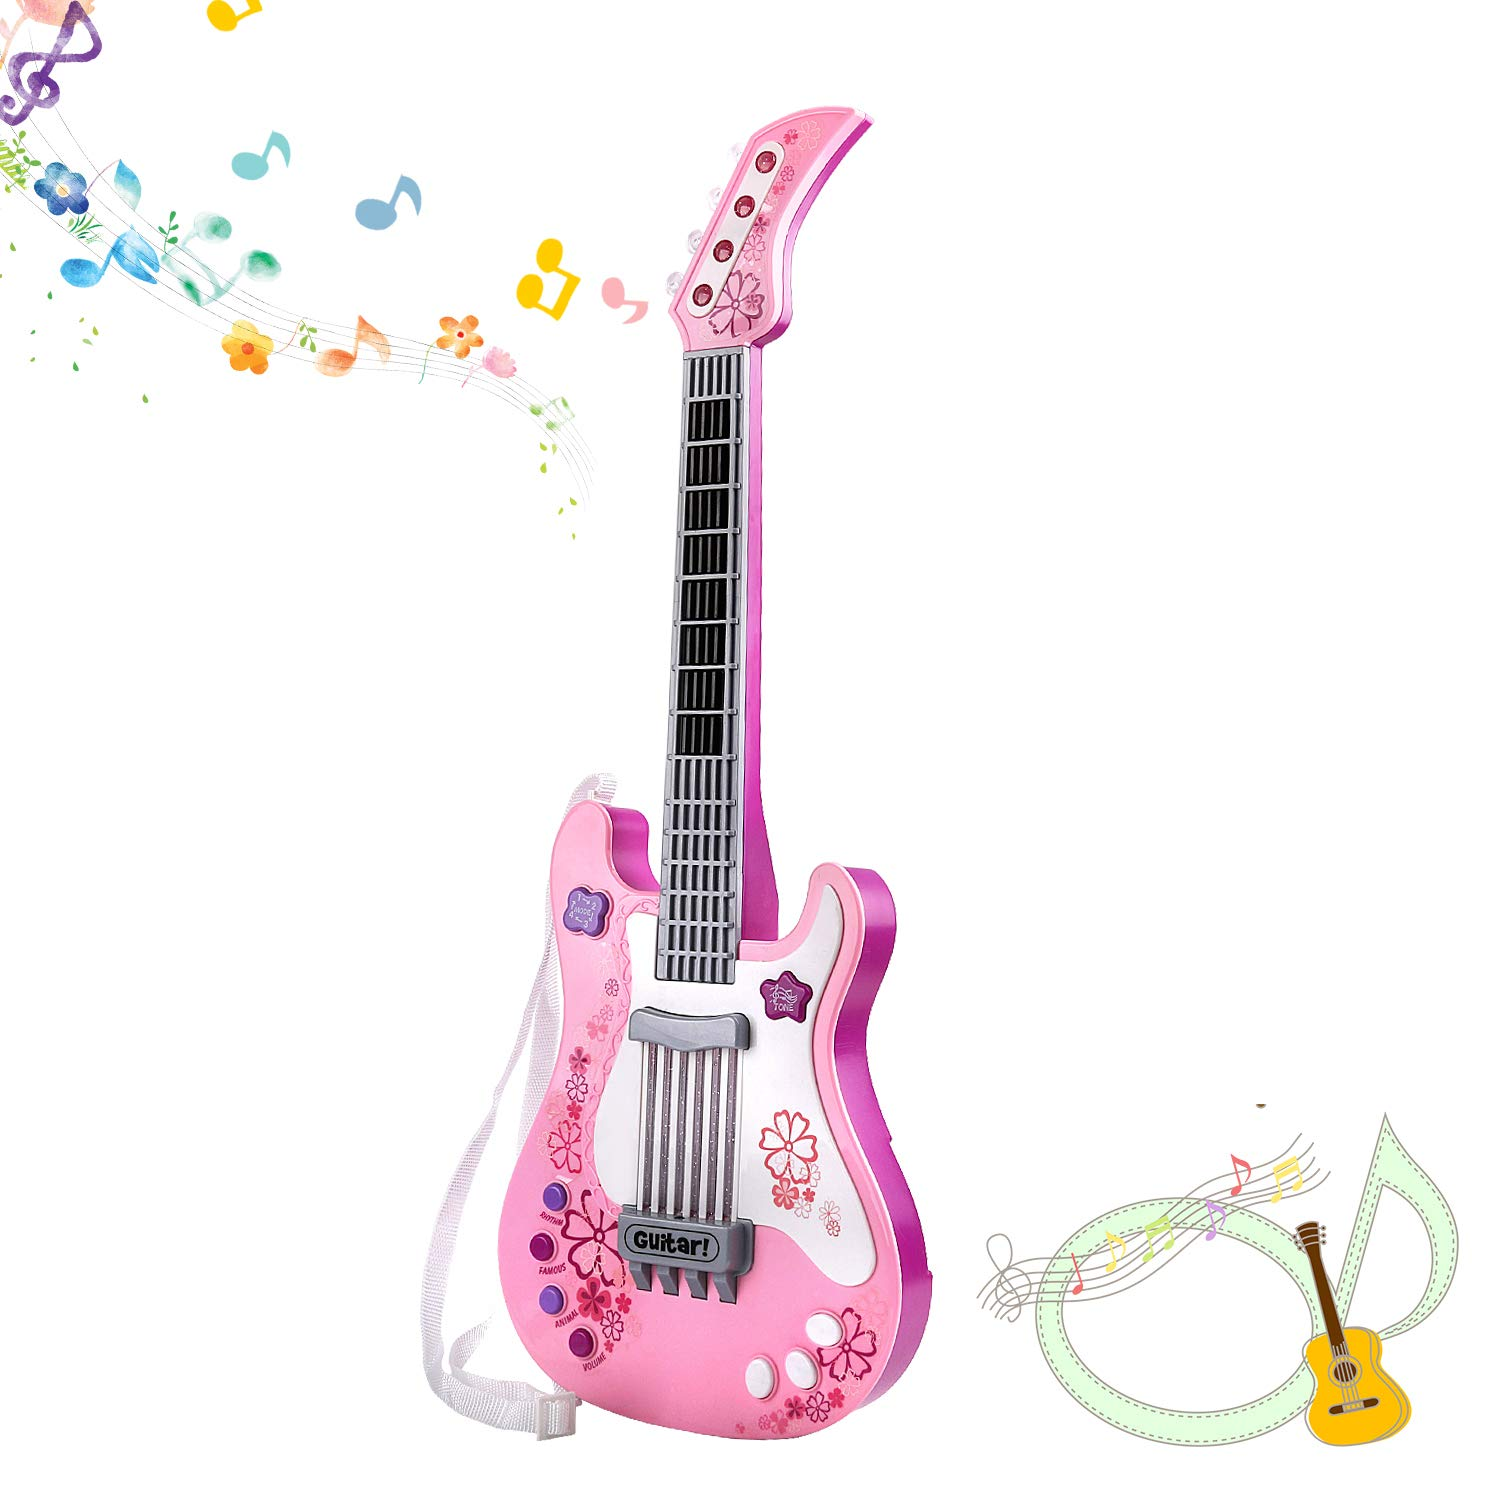 TWFRIC Girls Guitar, Kids Toy Guitar, Pink Kid Guitar Music Instruments Birthday Gift Party Favor for Kids